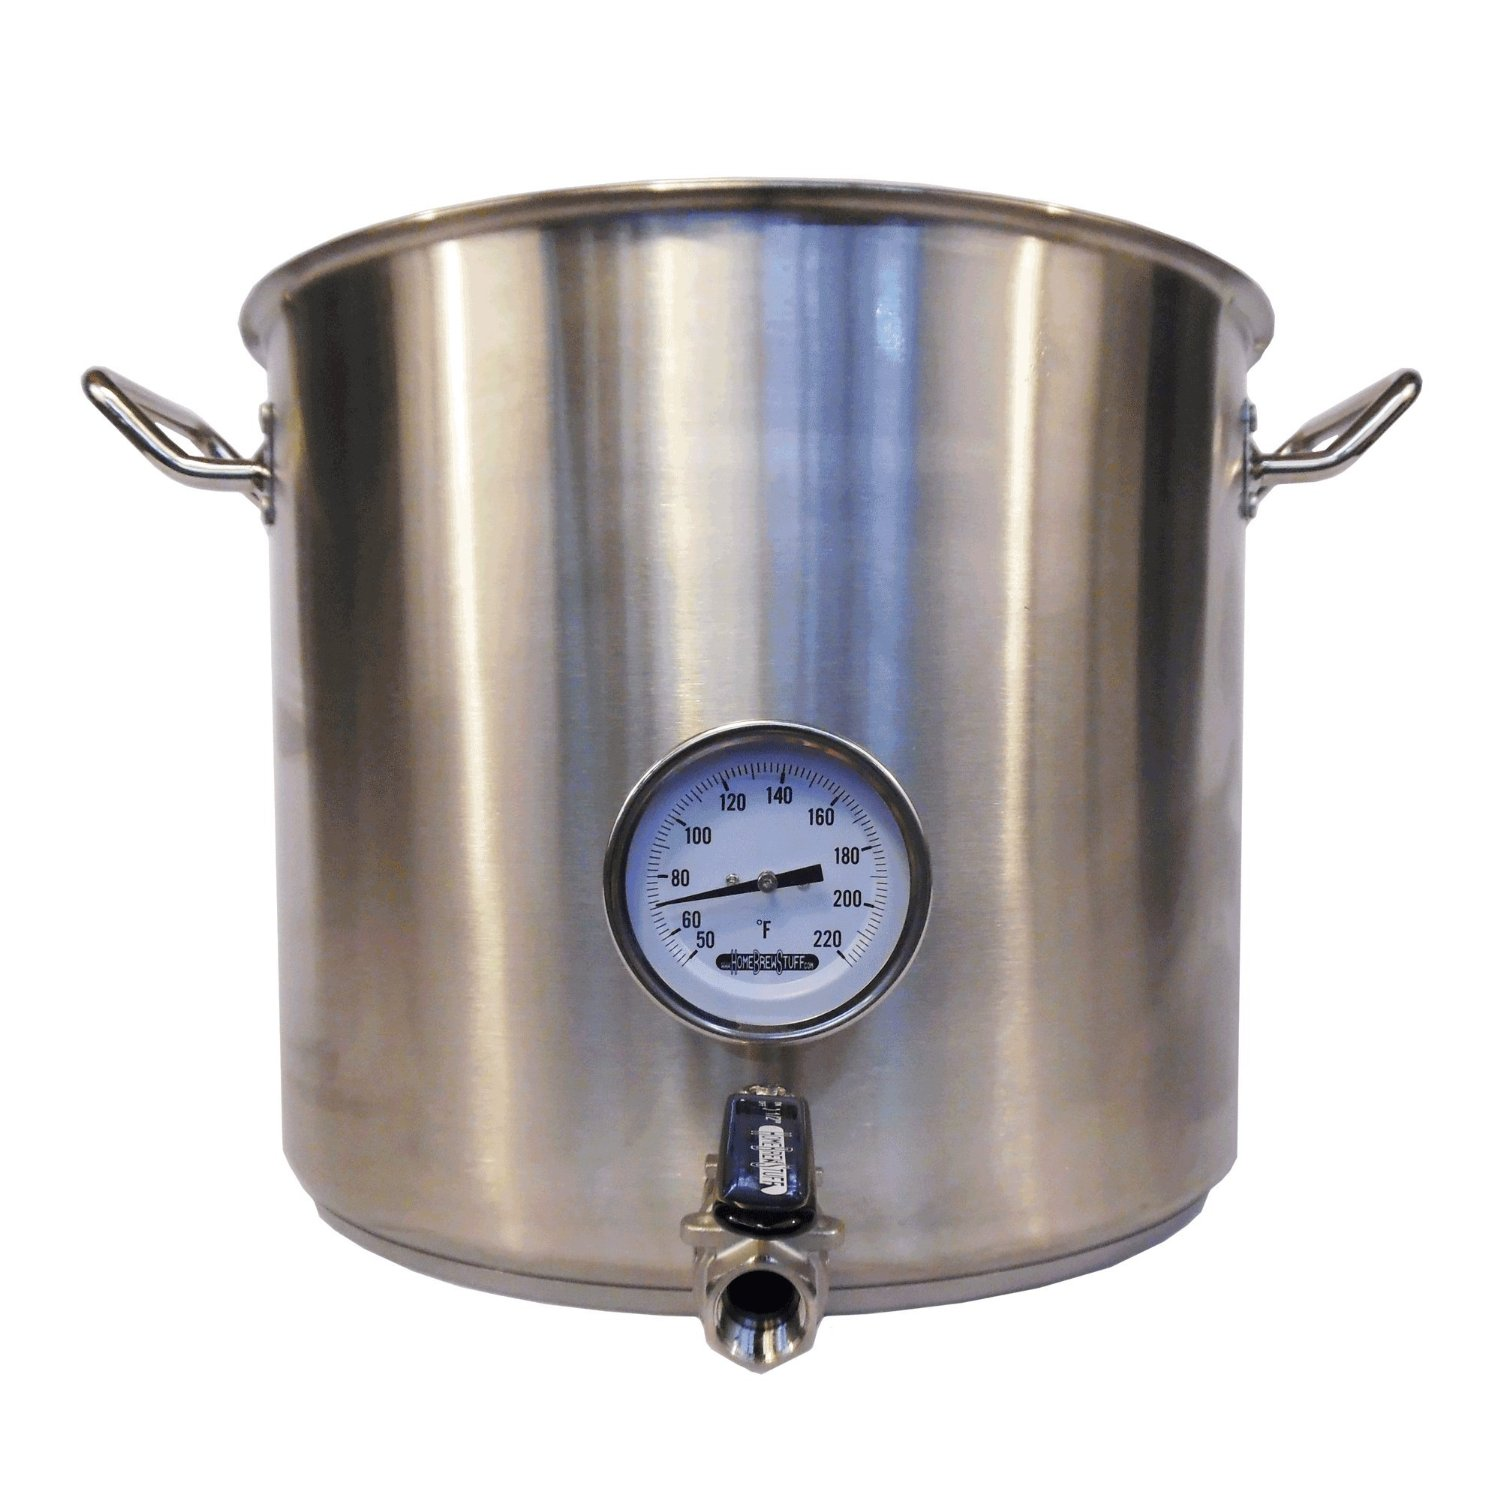 Stainless Steel Kettle with Welded Valve, Thermometer and Bazooka Screen (HomeBrewStuff) (32 QT) (8 gallon)